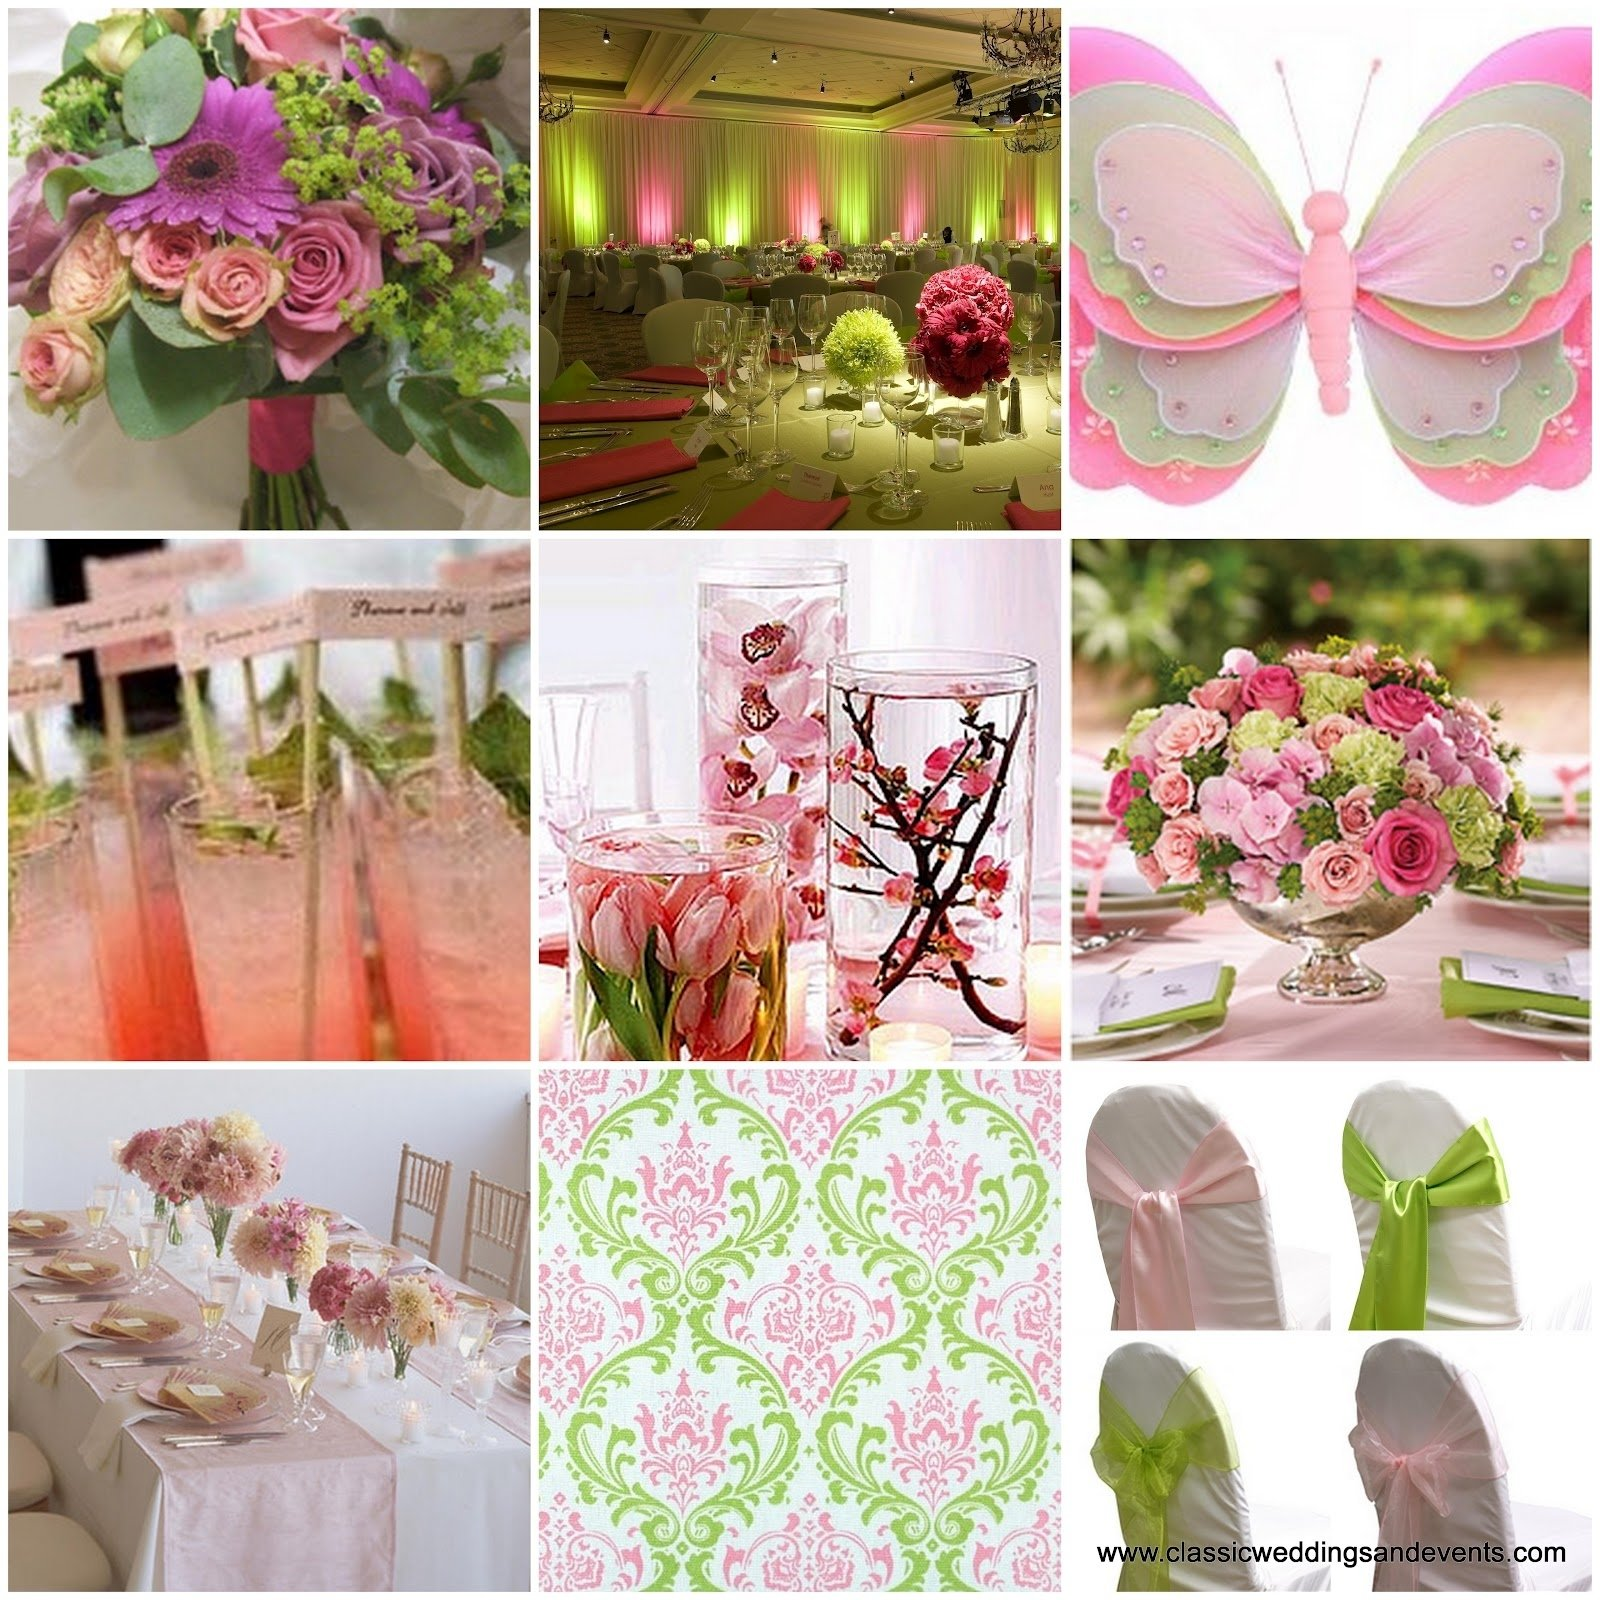 10 Awesome Pink And Green Wedding Ideas best pink and green wedding ideas gallery styles ideas 2018 2020